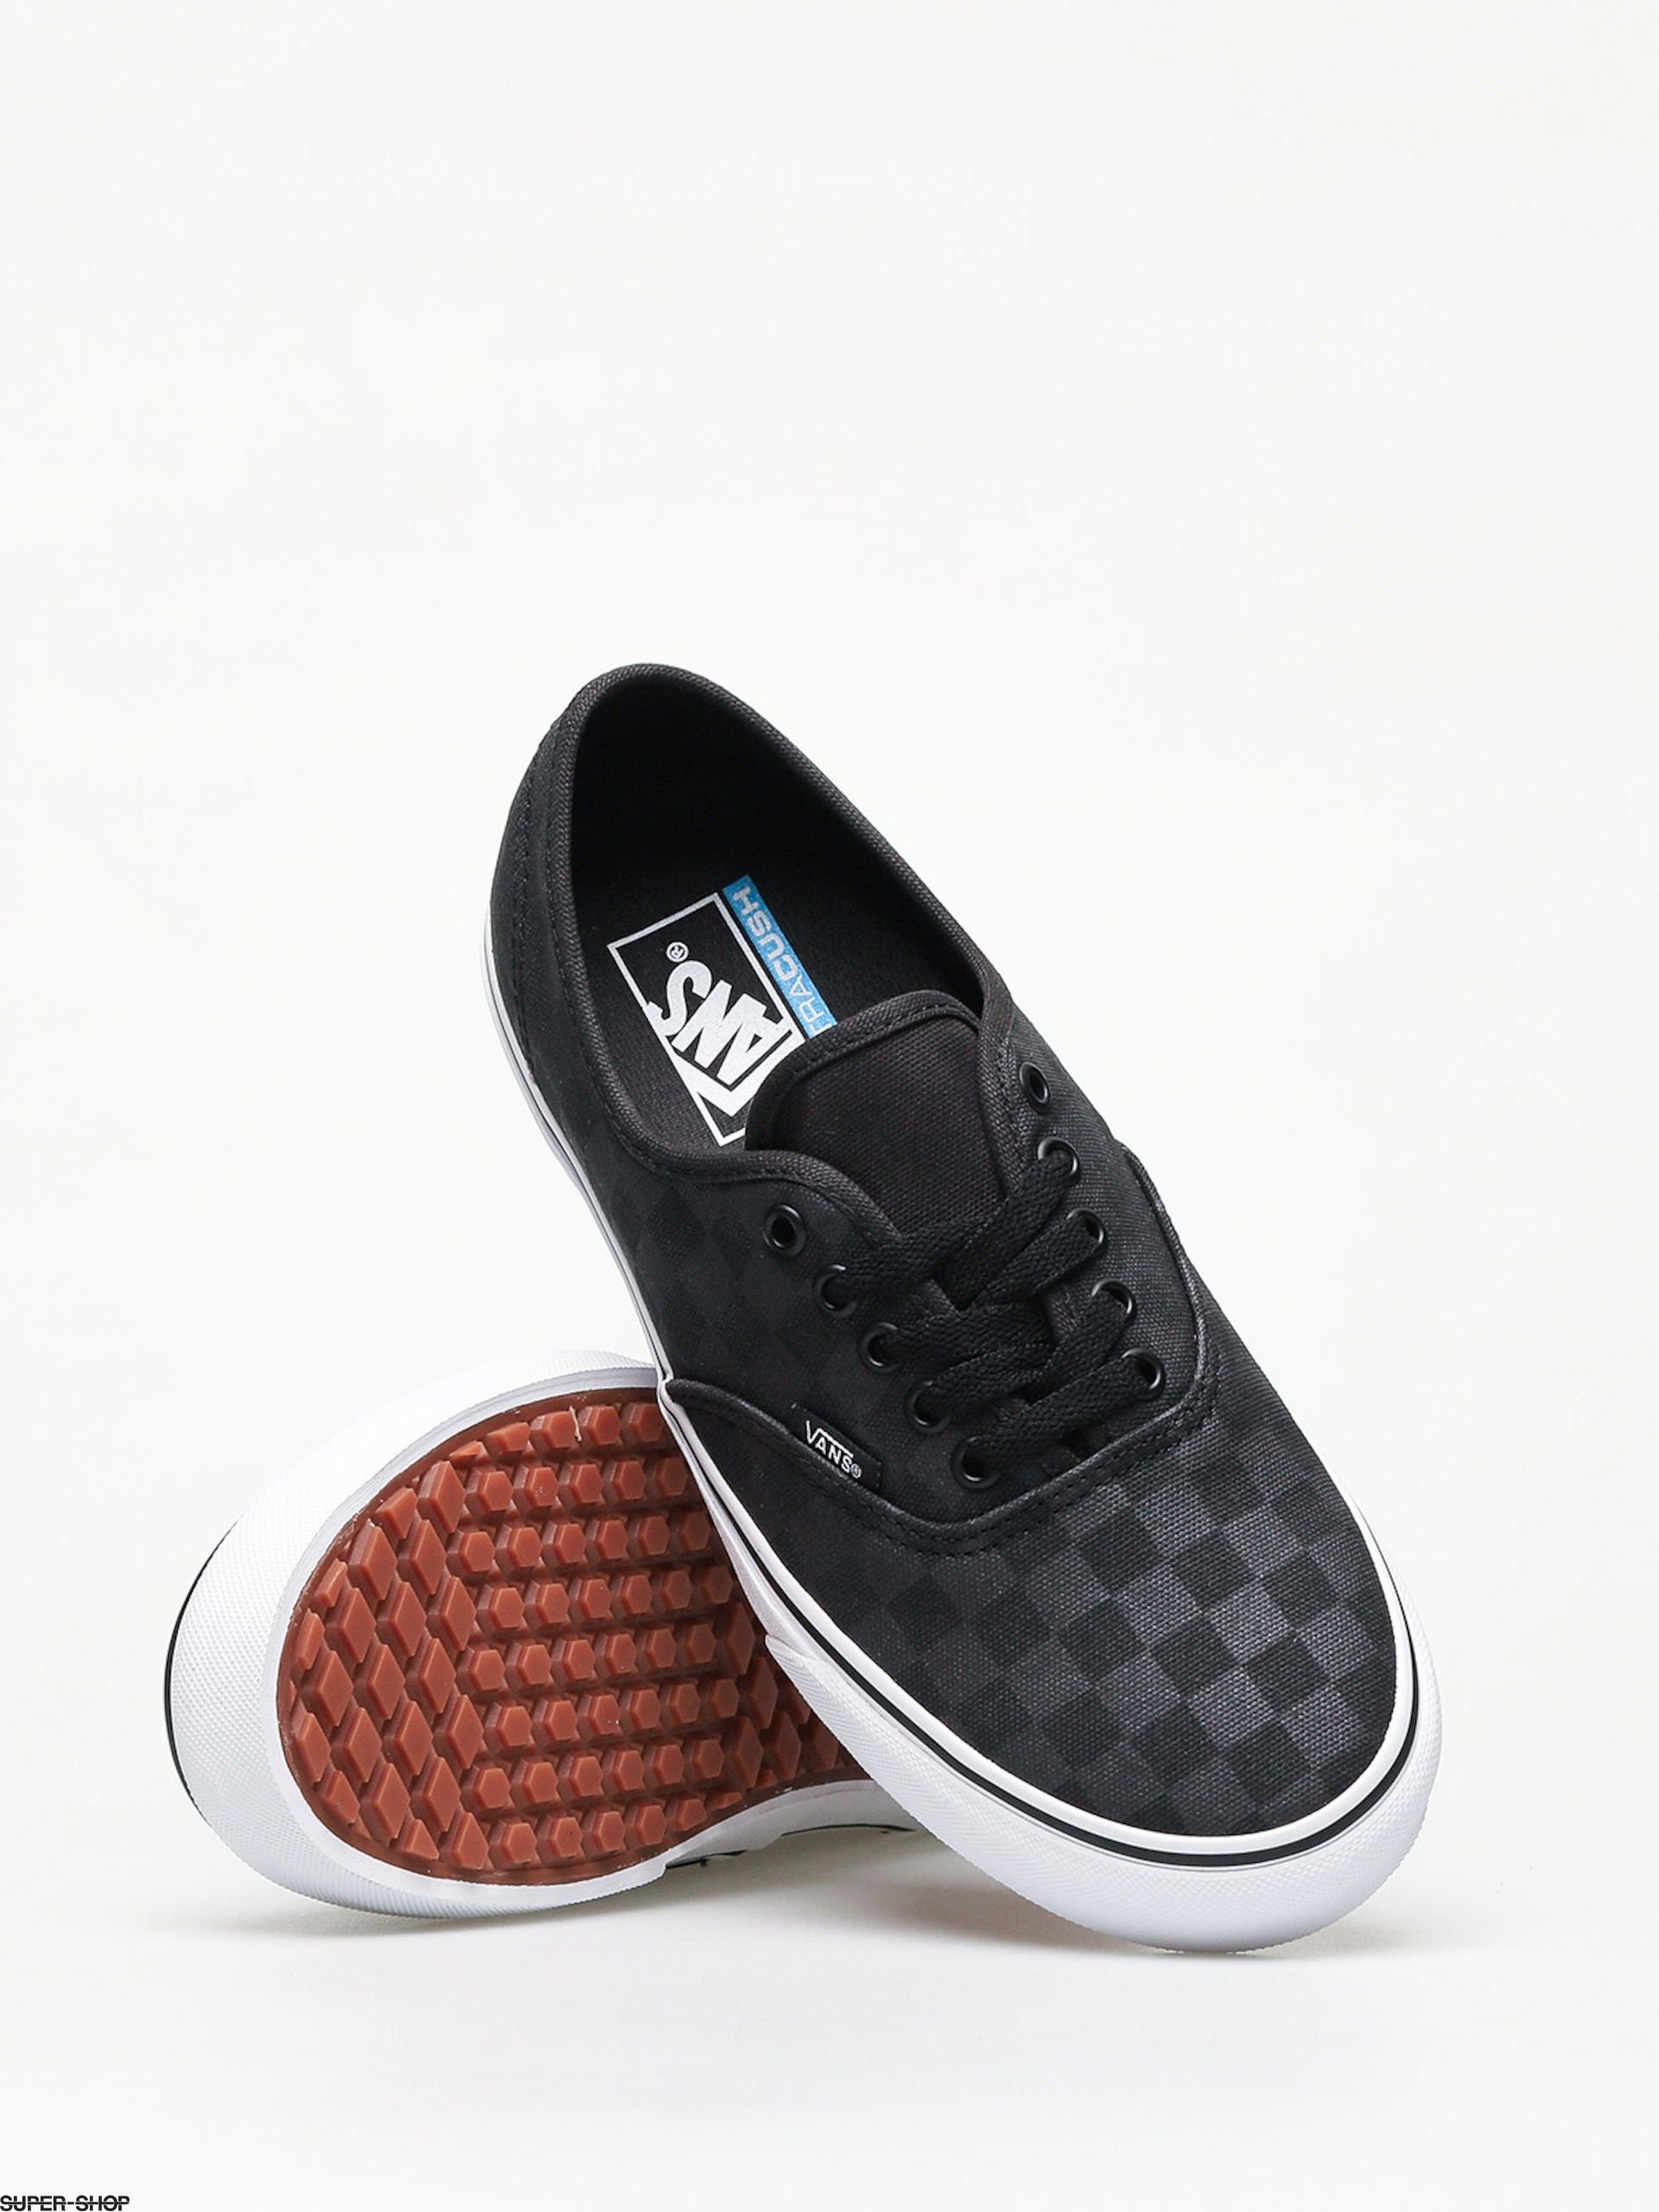 Vans Authentic Shoes (made for the